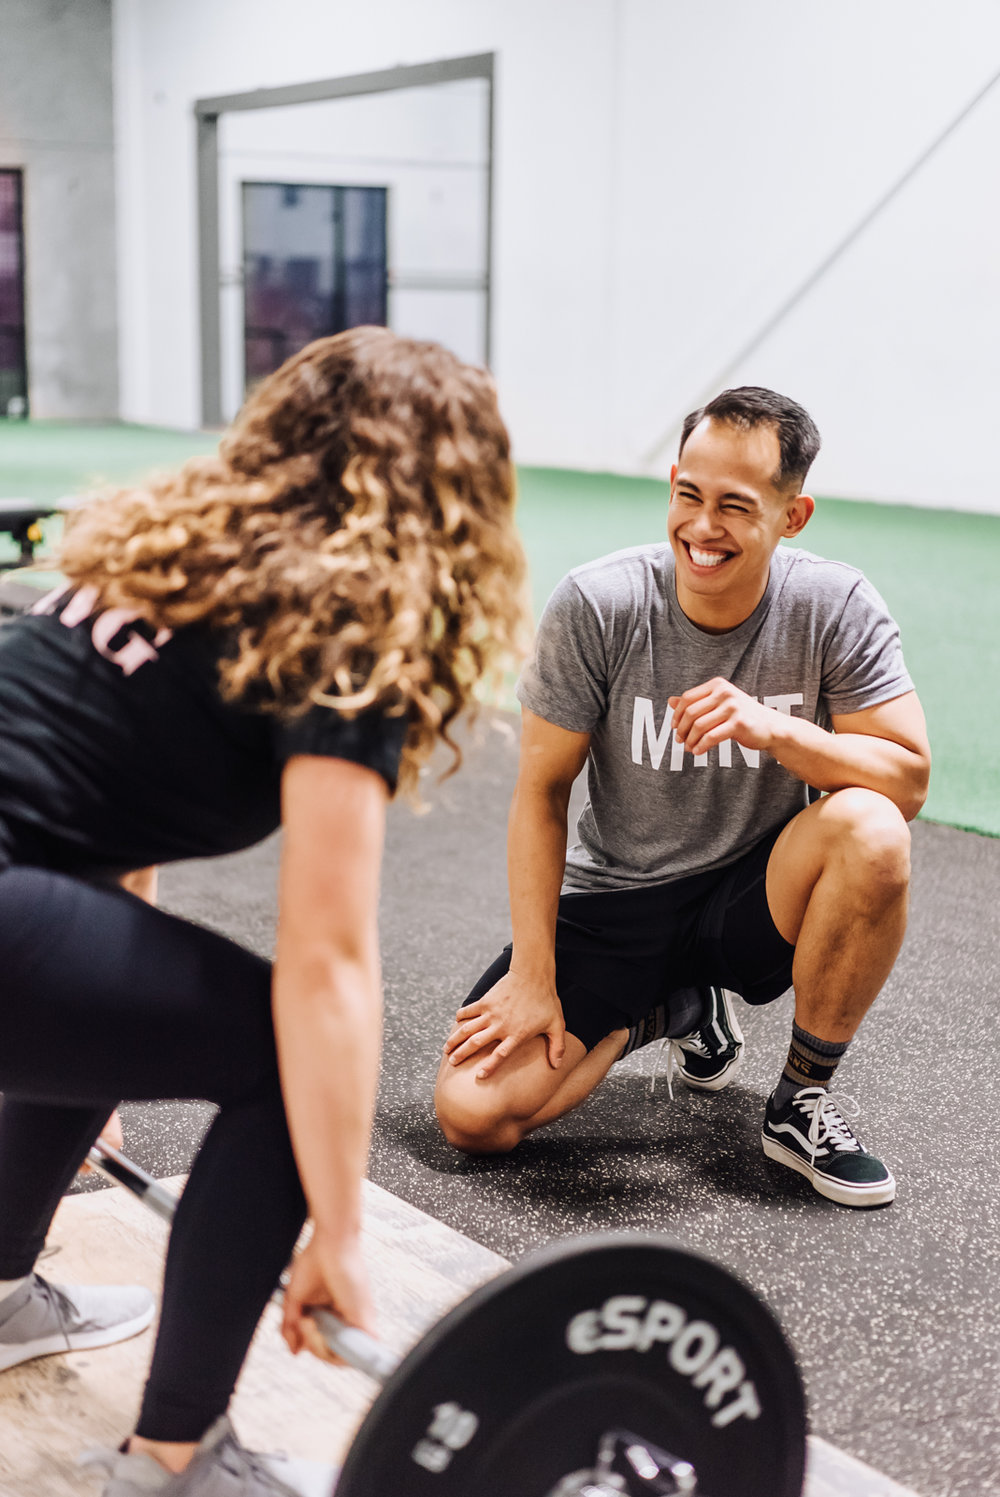 JOIN #CLUBMINT - Every season is different, so every season we release a new schedule of training opportunities.In addition to our tailored sports specific strength and conditioning programs, MINT athletes take part in comprehensive workshops in nutrition, mental health, yoga and kickboxing.